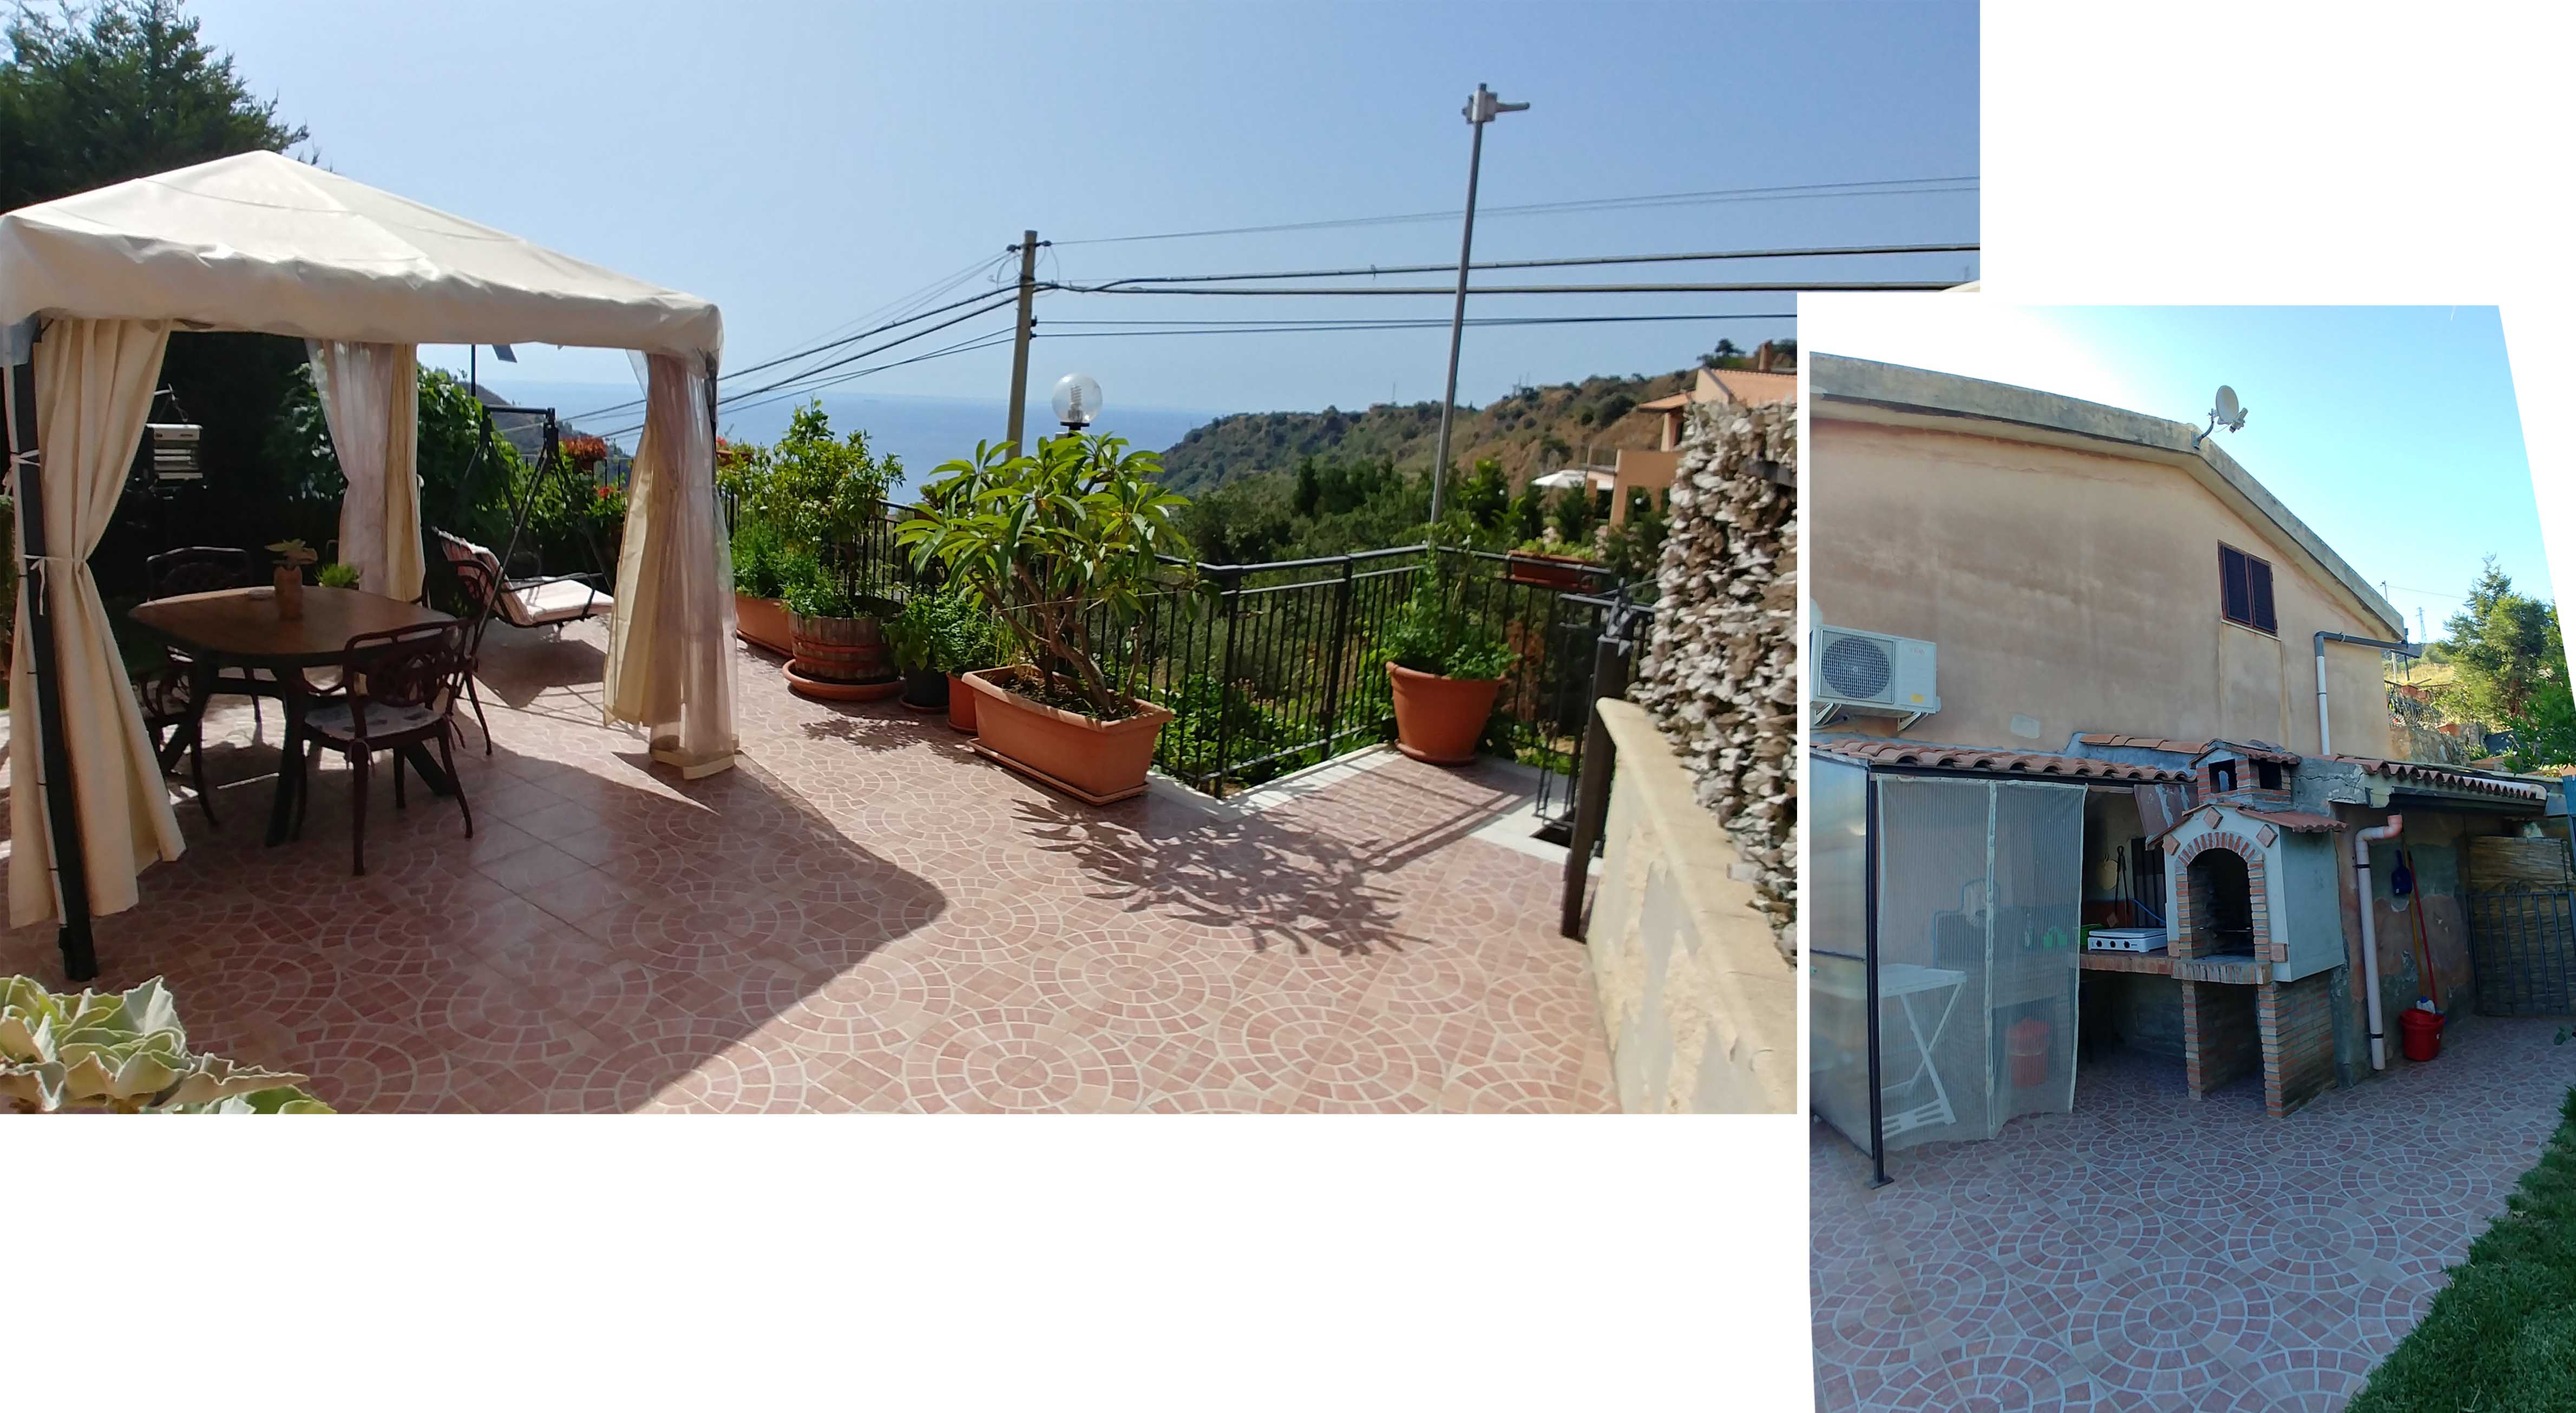 Our private terrace and outdoor cooking area